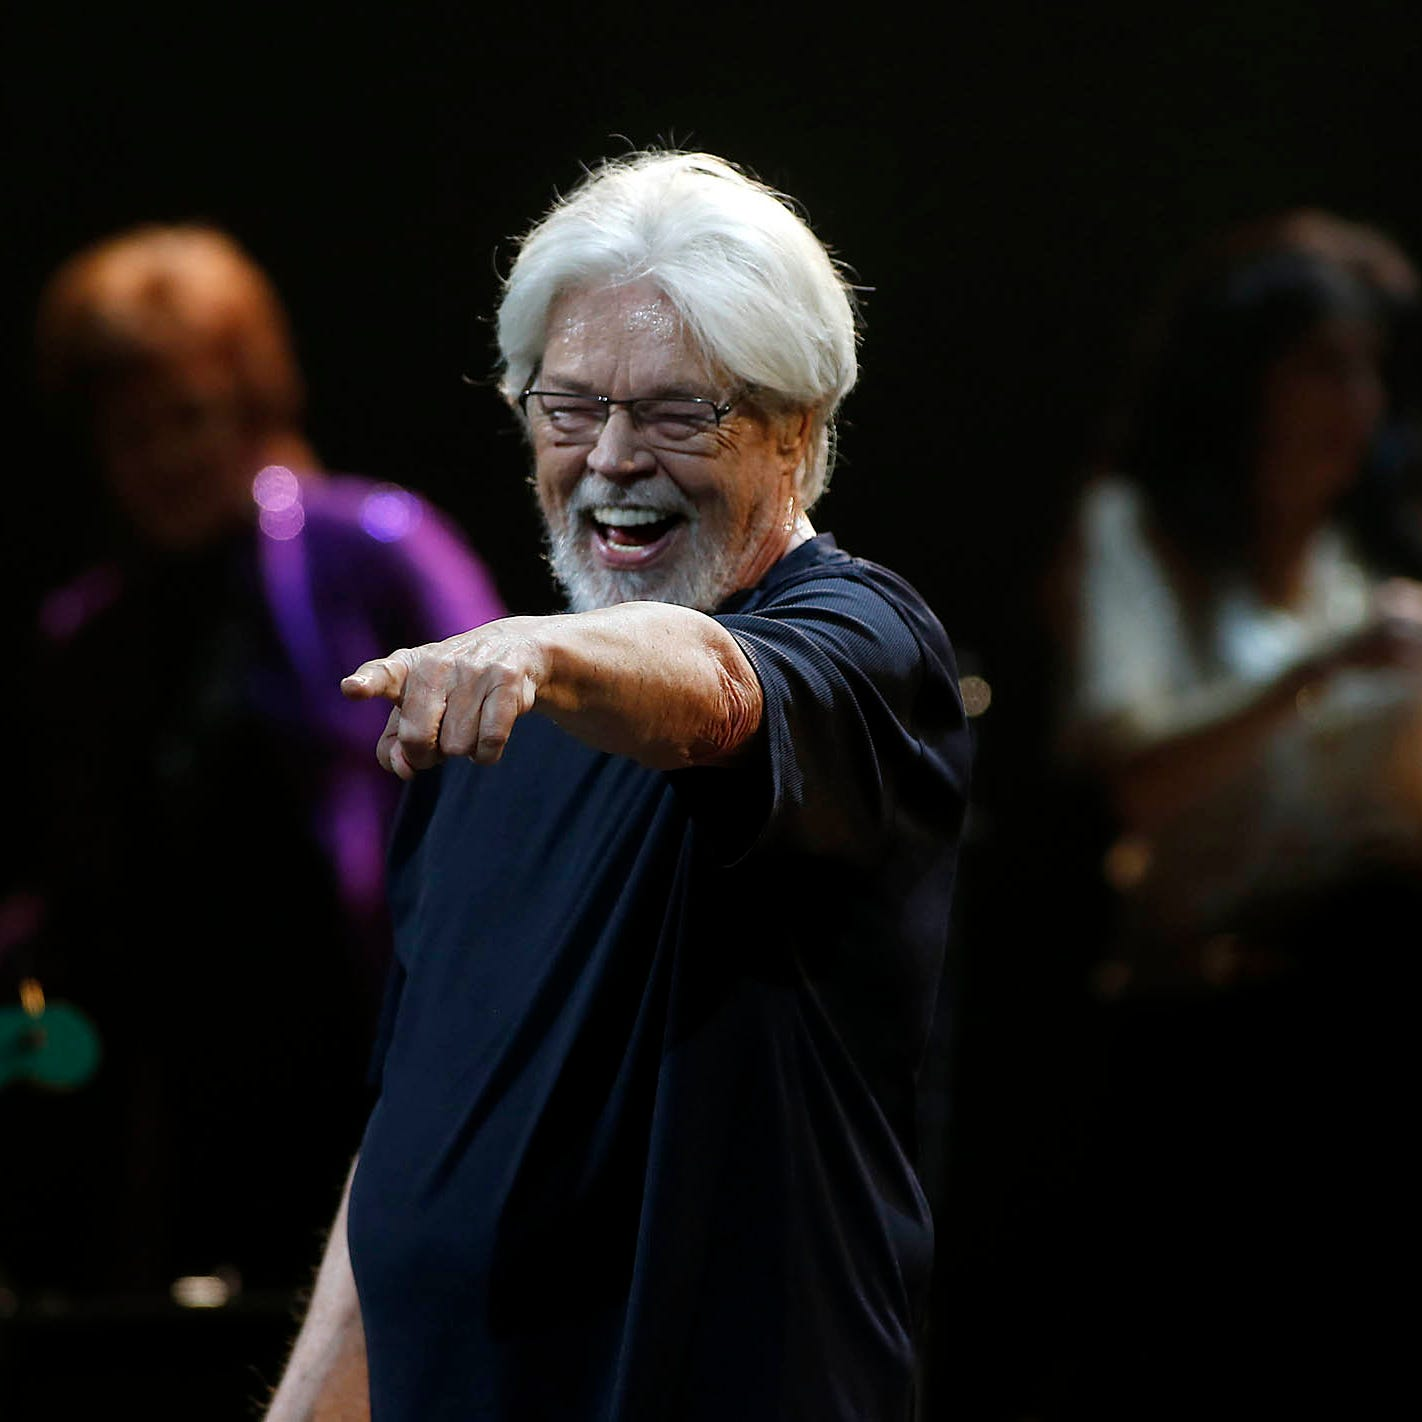 Bob Seger's final tour shows sold-out crowd in Phoenix why rock 'n' roll never forgets